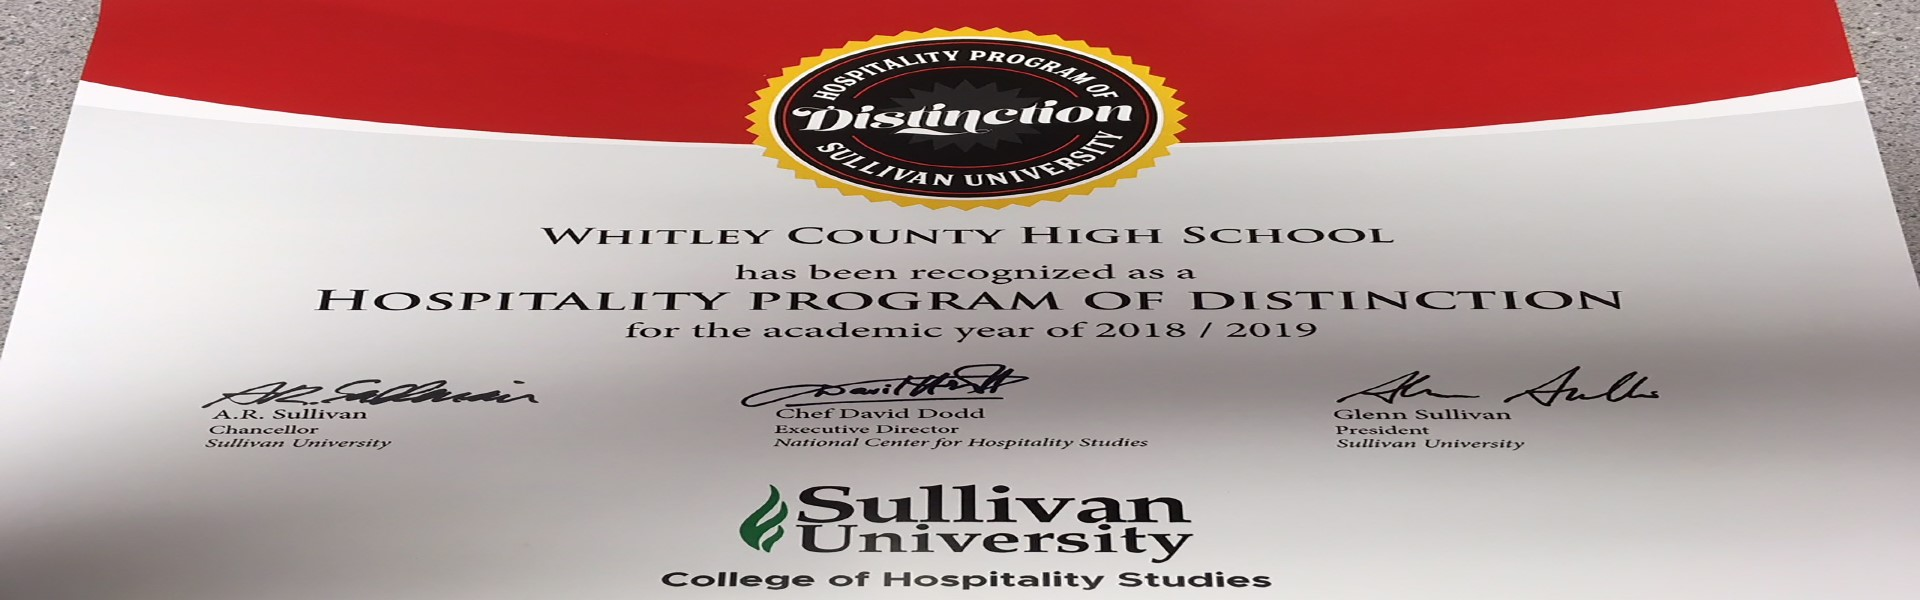 Hospitality Program of Distinction